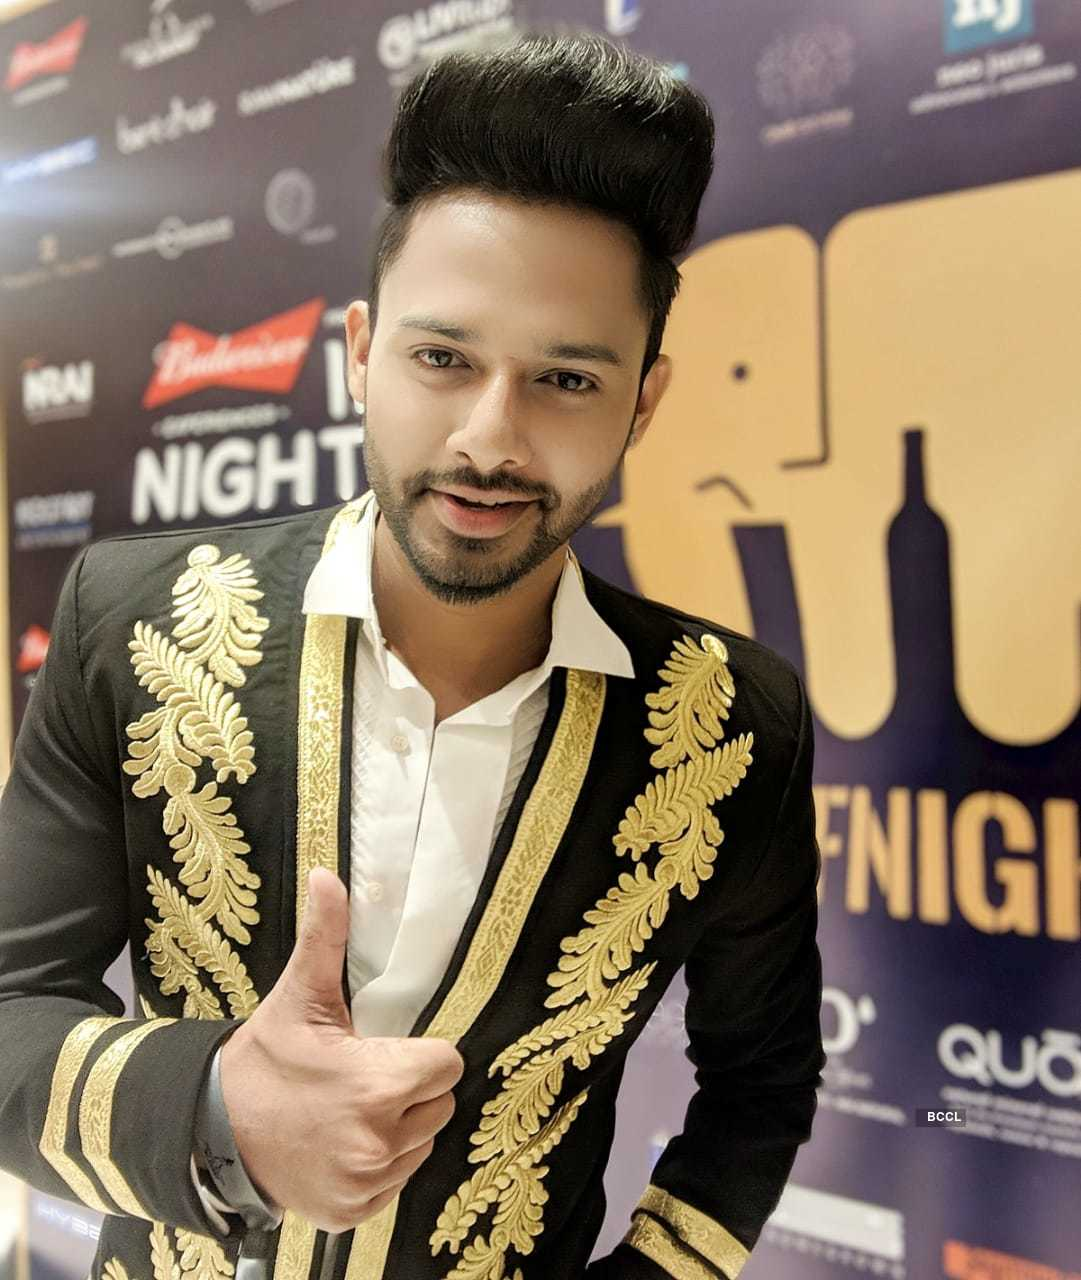 Singer Stebin Ben receives Artist of the year (Bollywood) at India Nightlife Awards 2018